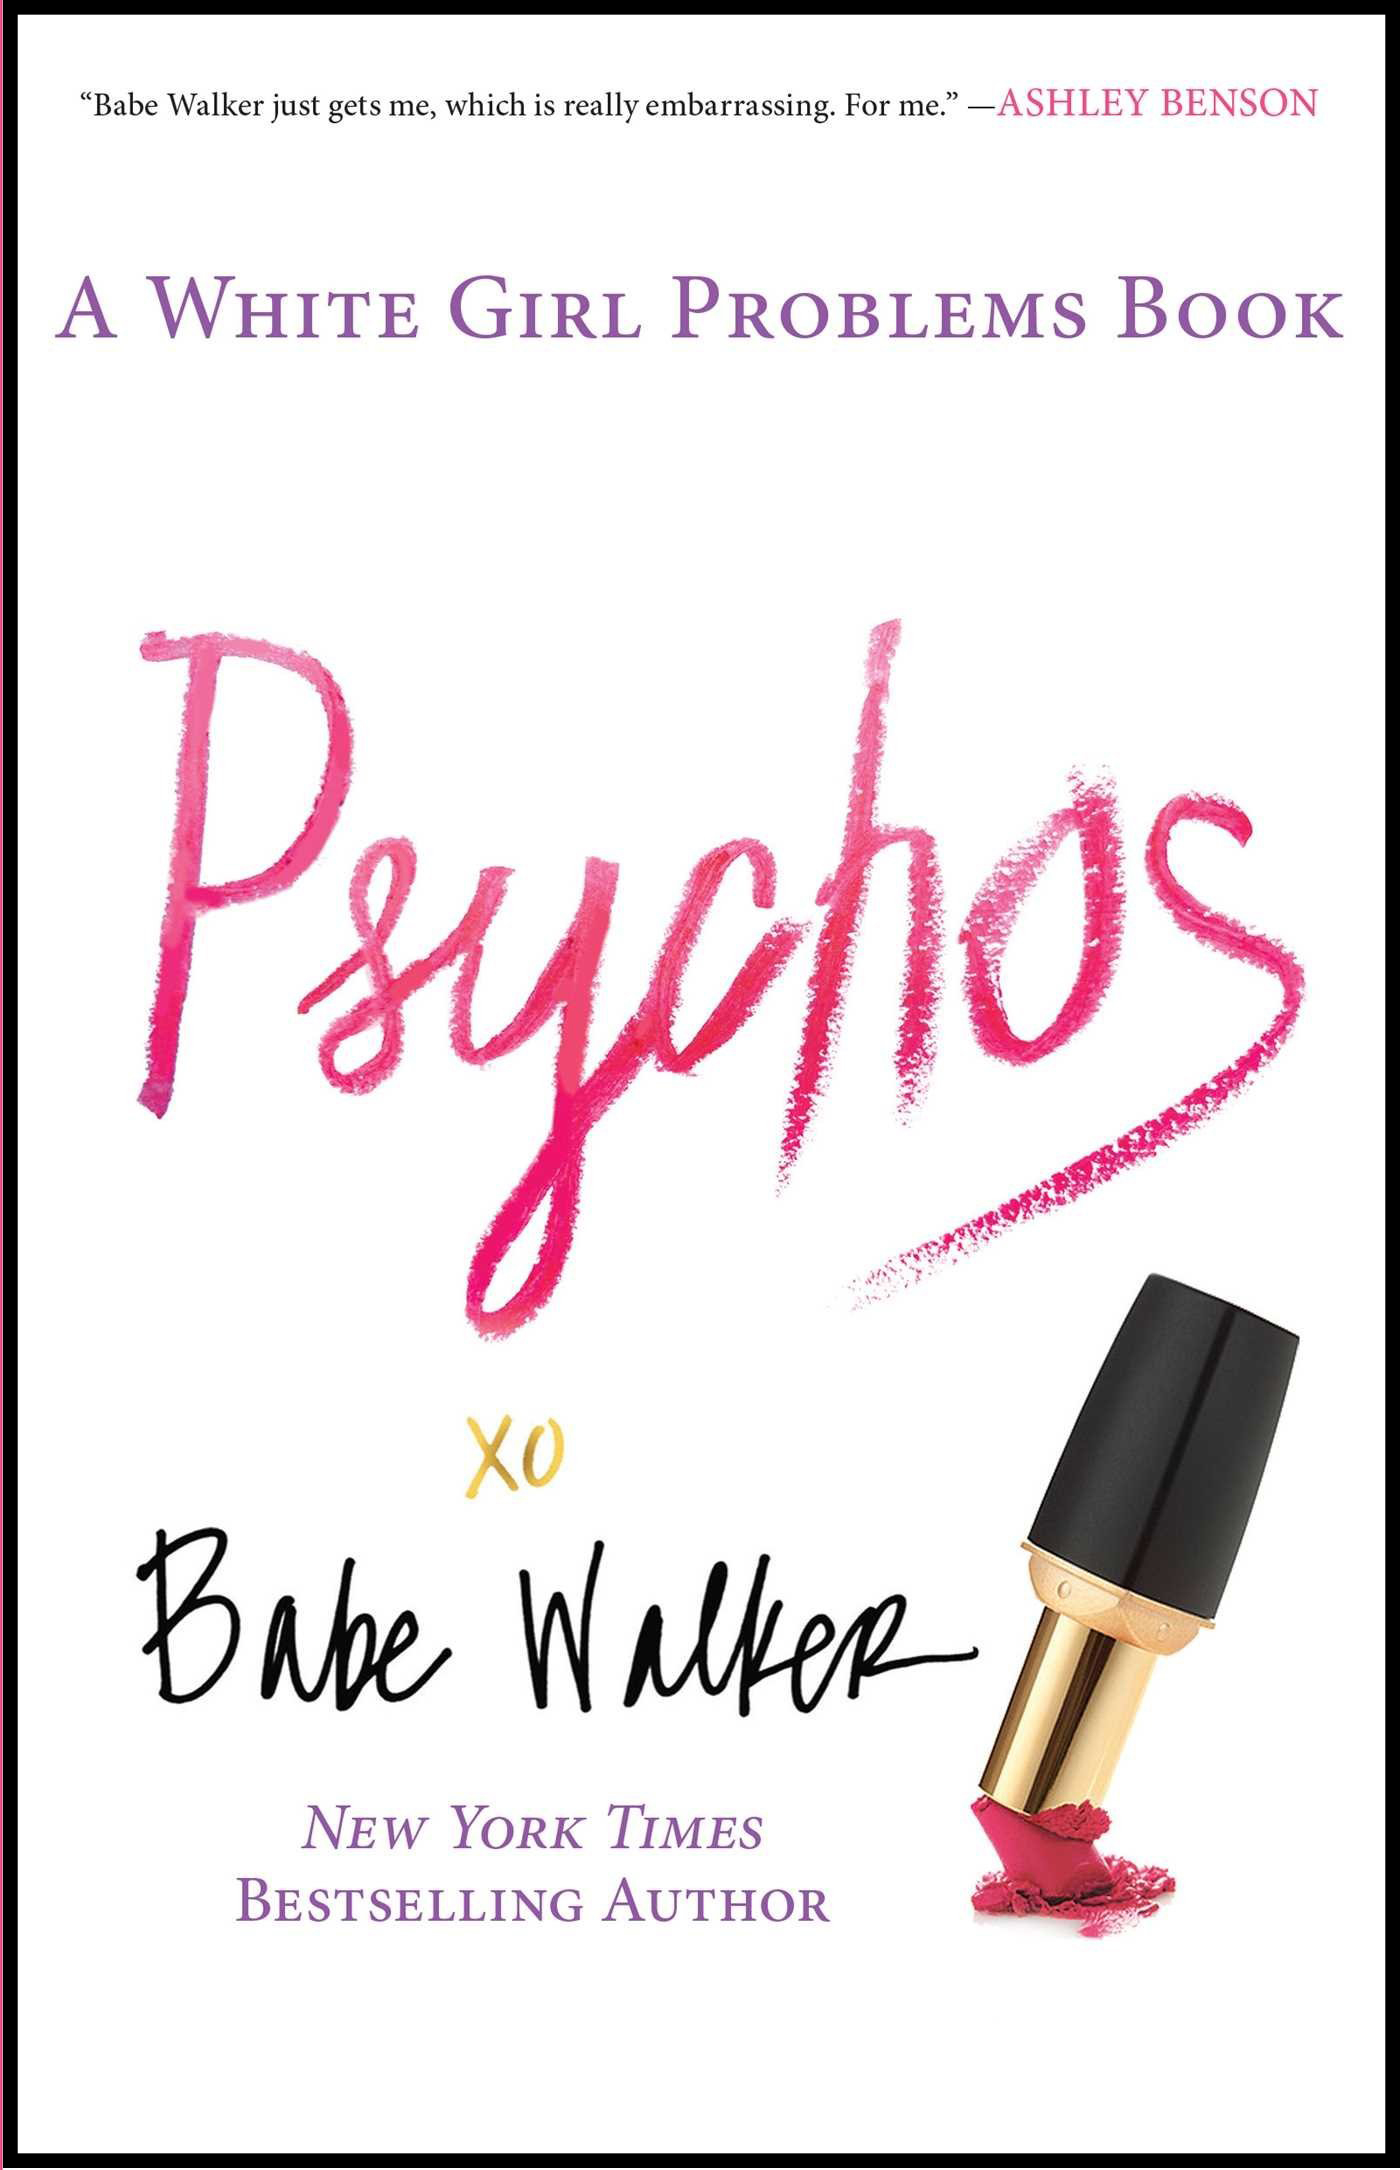 Psychos - In this hysterical follow-up to the New York Times bestseller White Girl Problems, Babe Walker travels the globe as she tries to figure out the answer to the question foremost on everyone's mind—including hers: Who is Babe Walker?